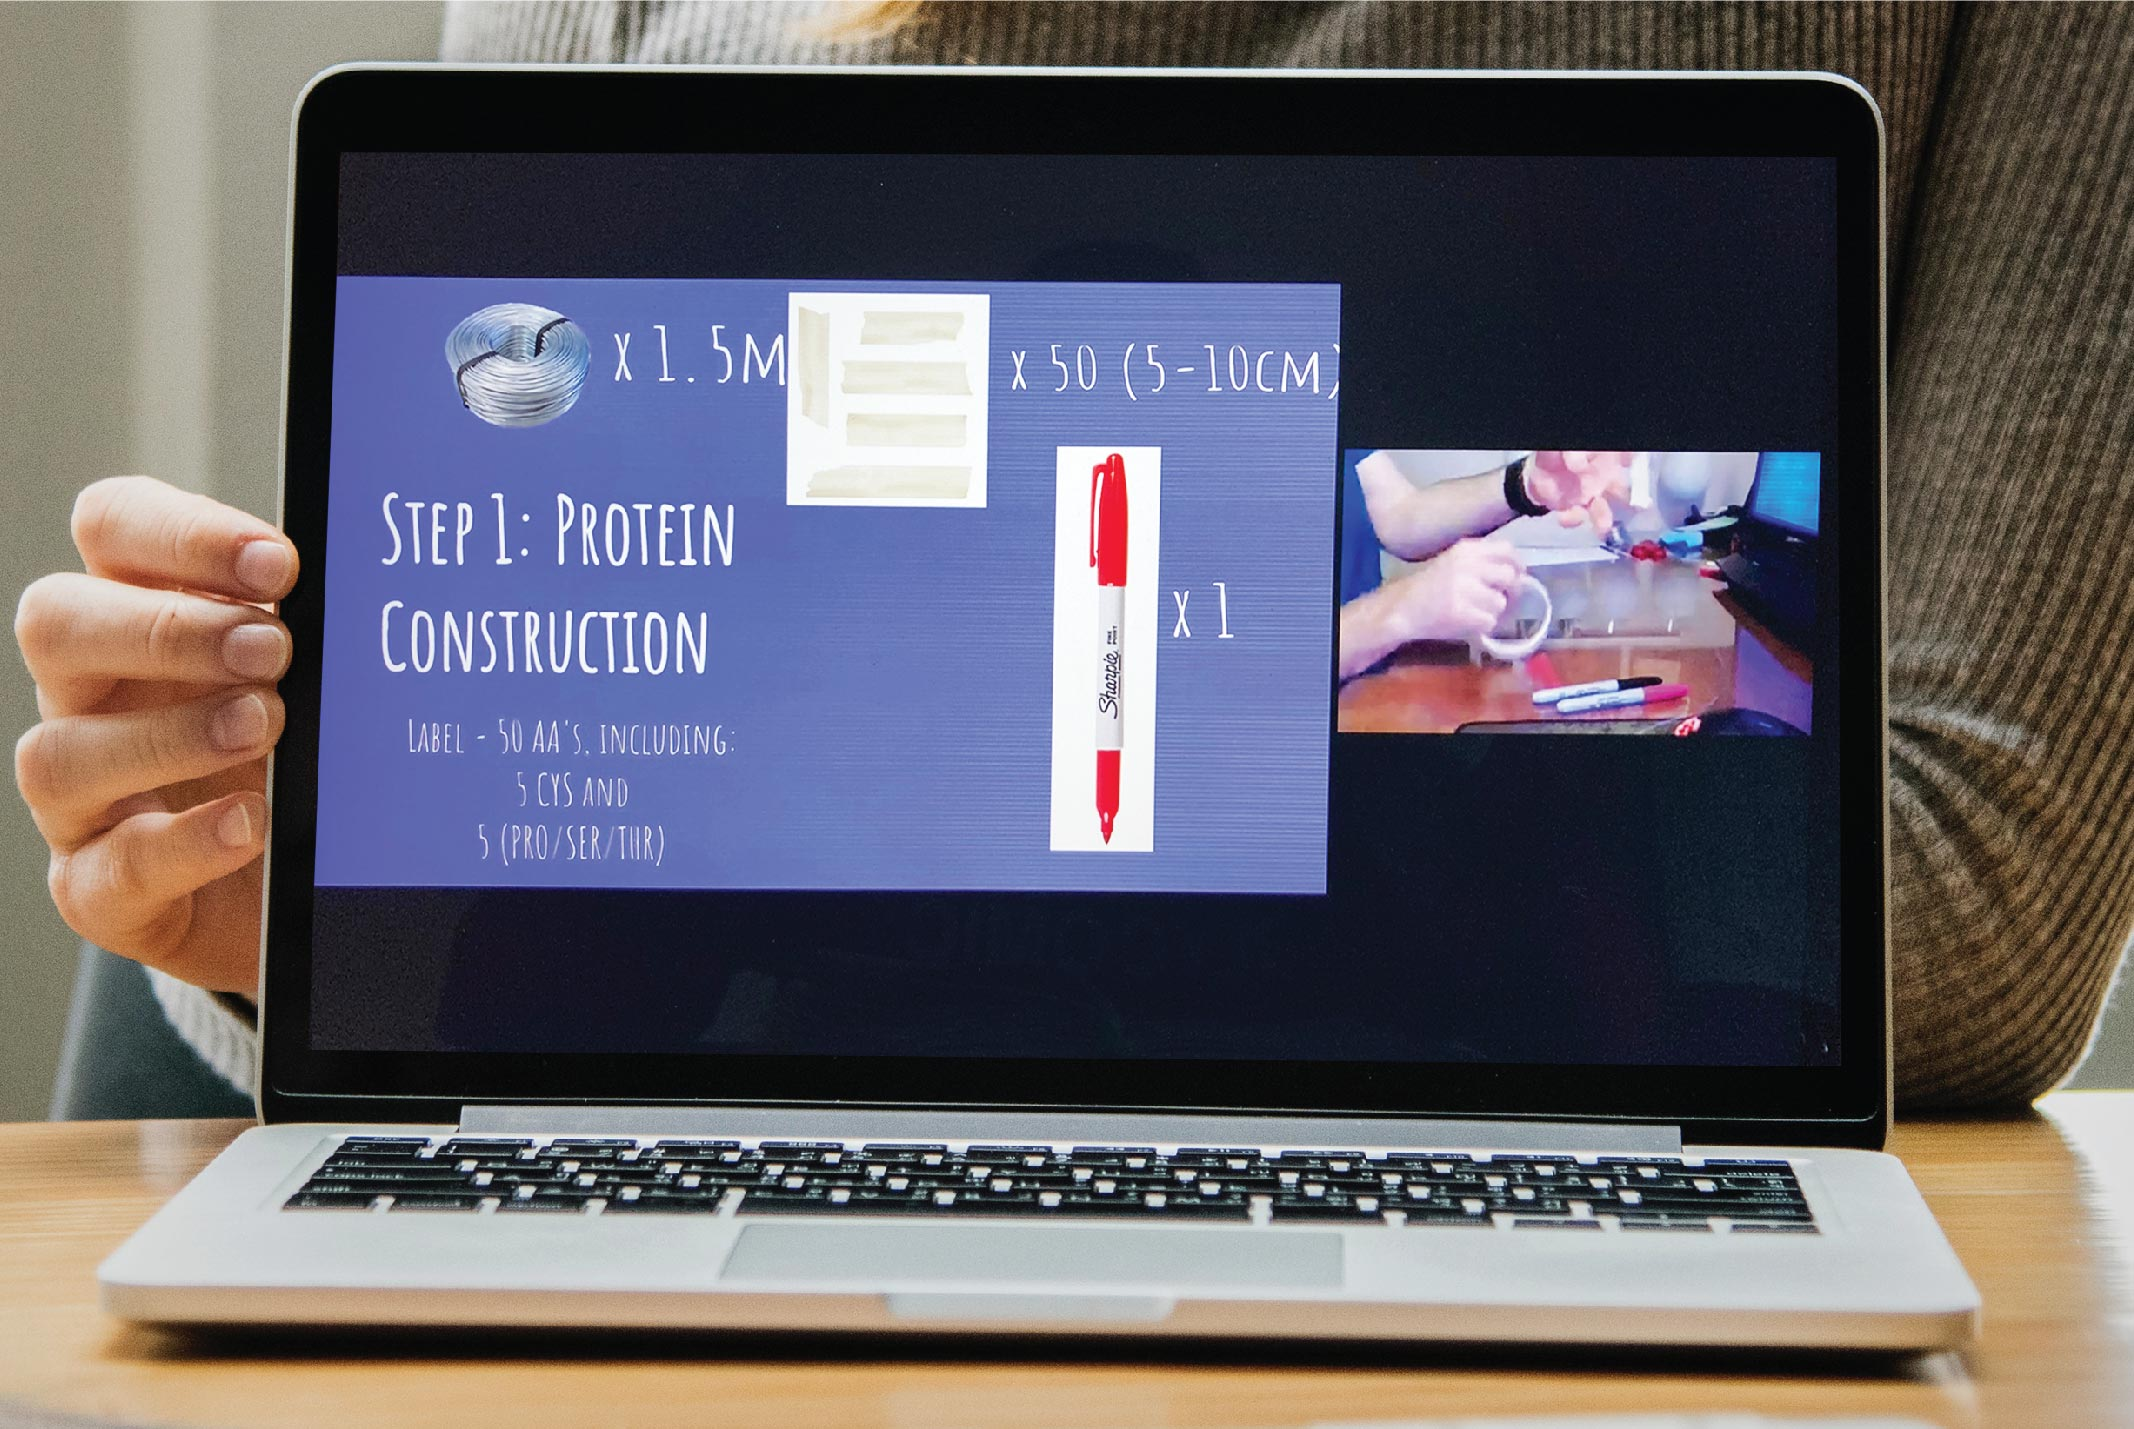 Teachers followed live demo of glycomics-related experiments using pre-mailed science kits.